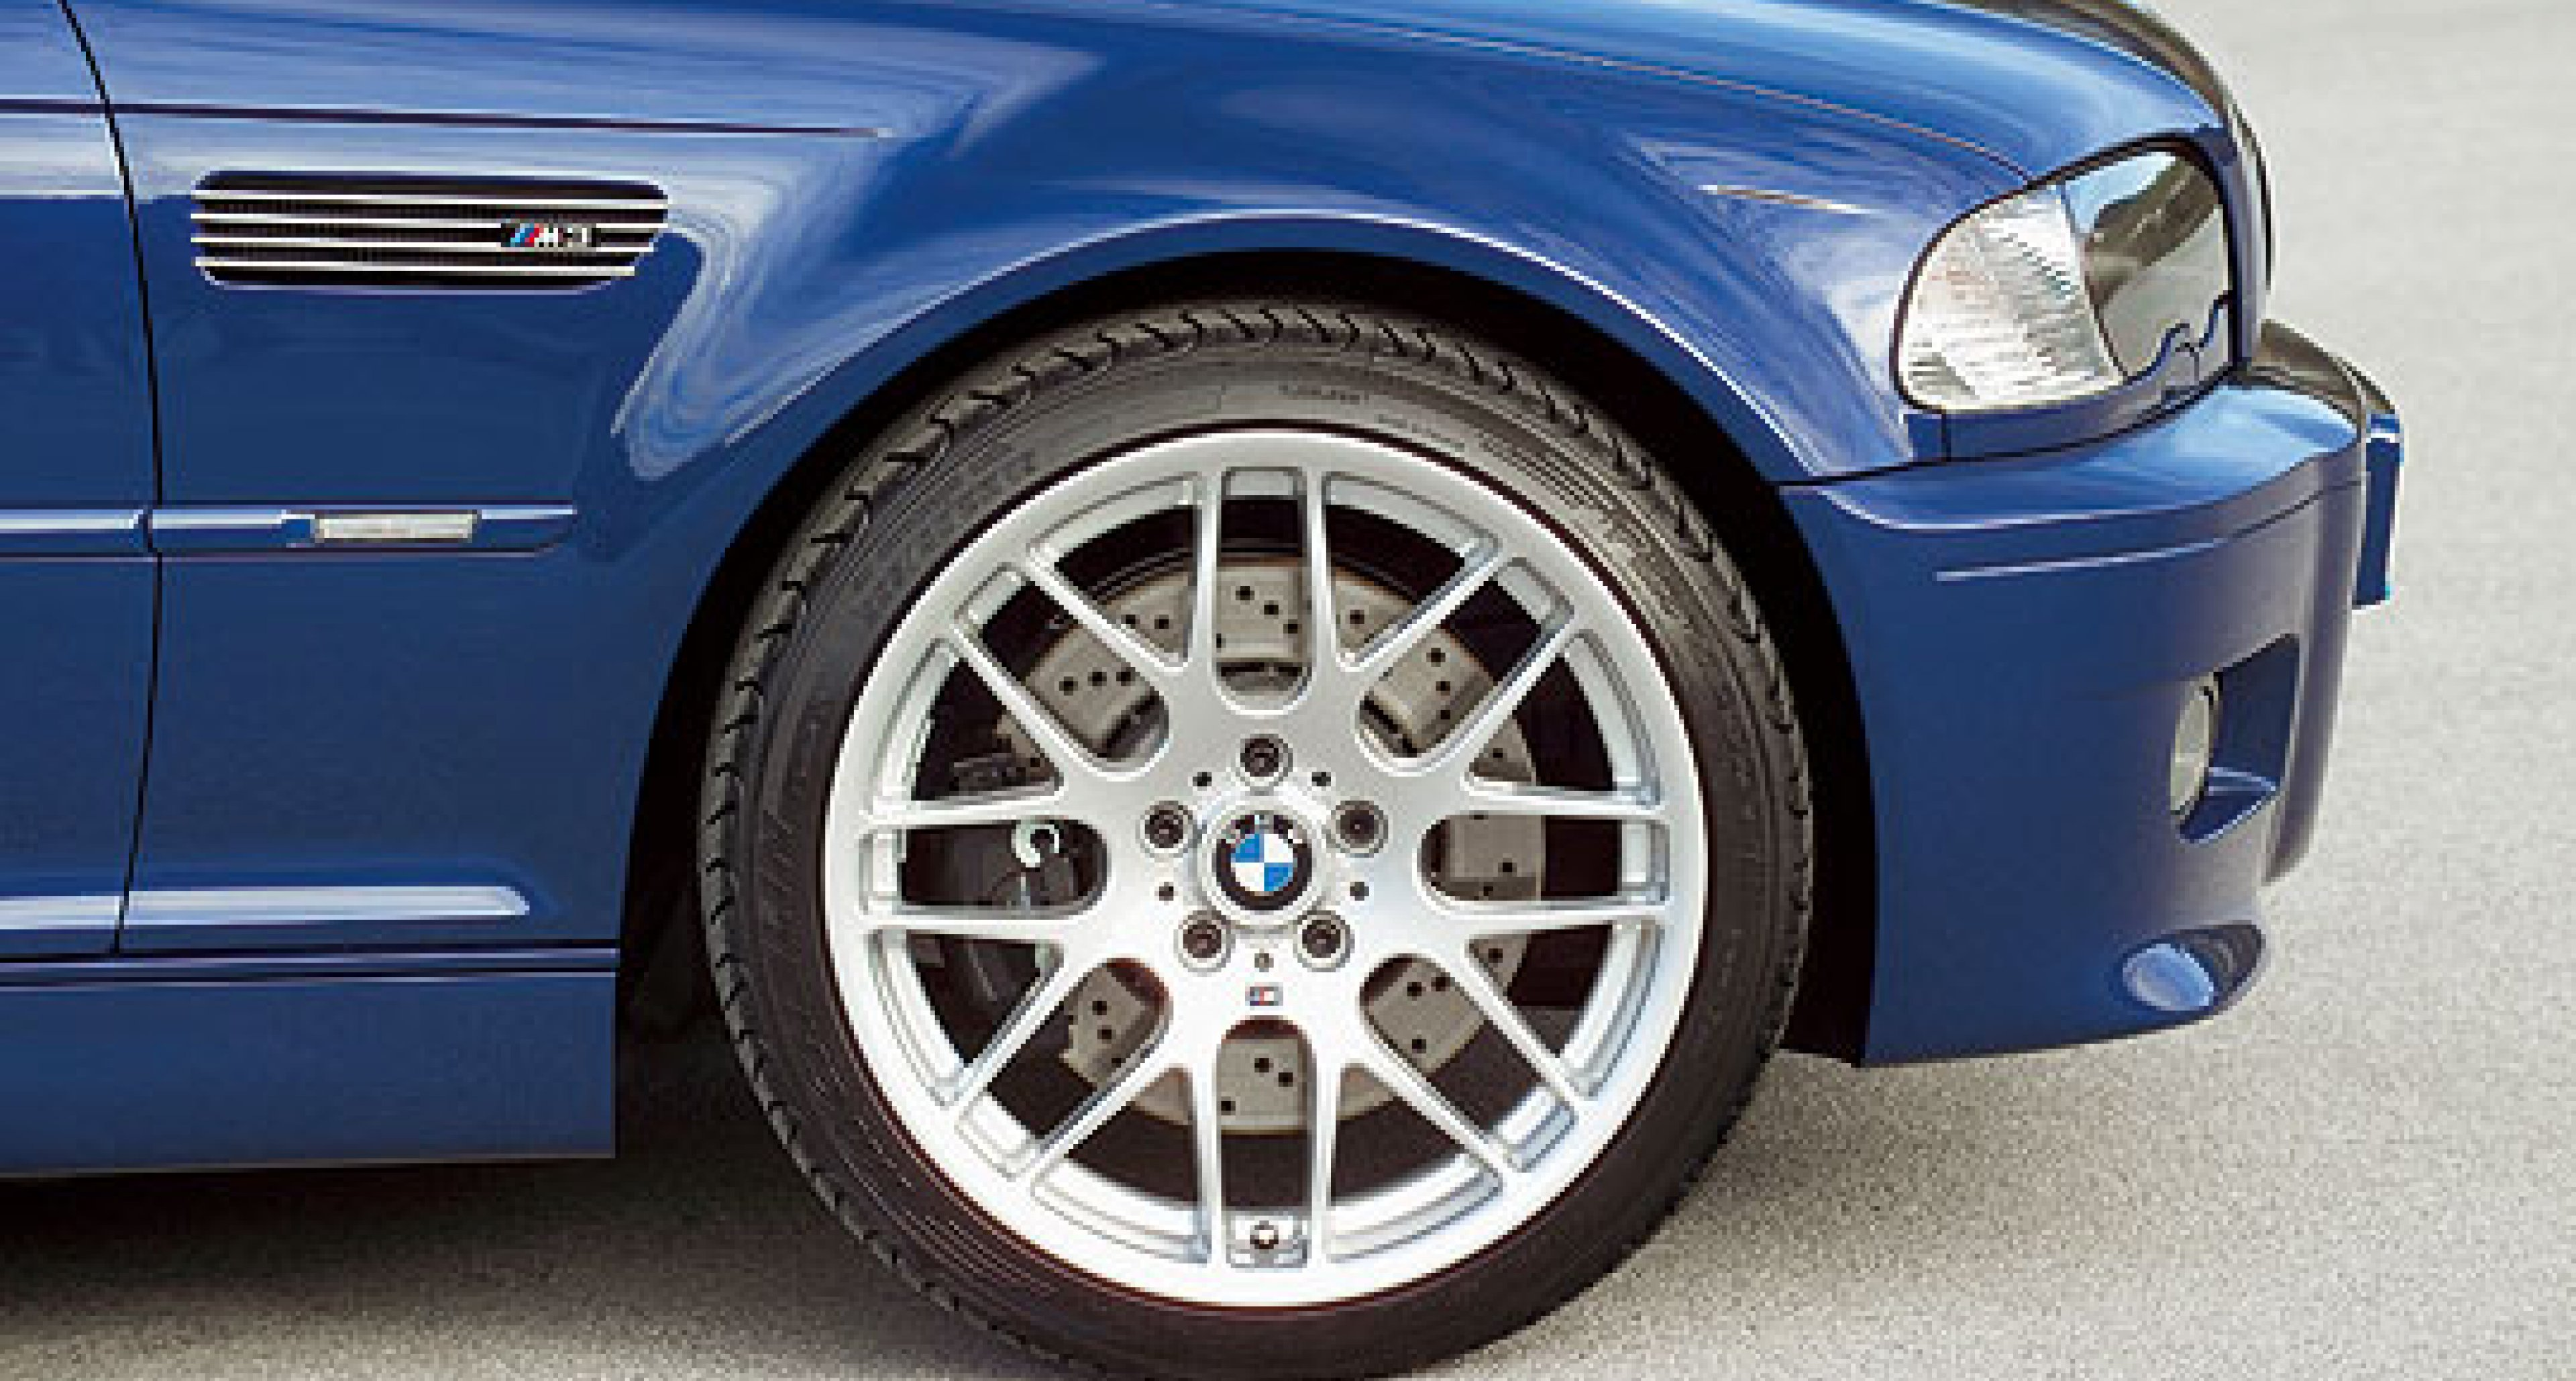 BMW 'Competition Package' for the M3